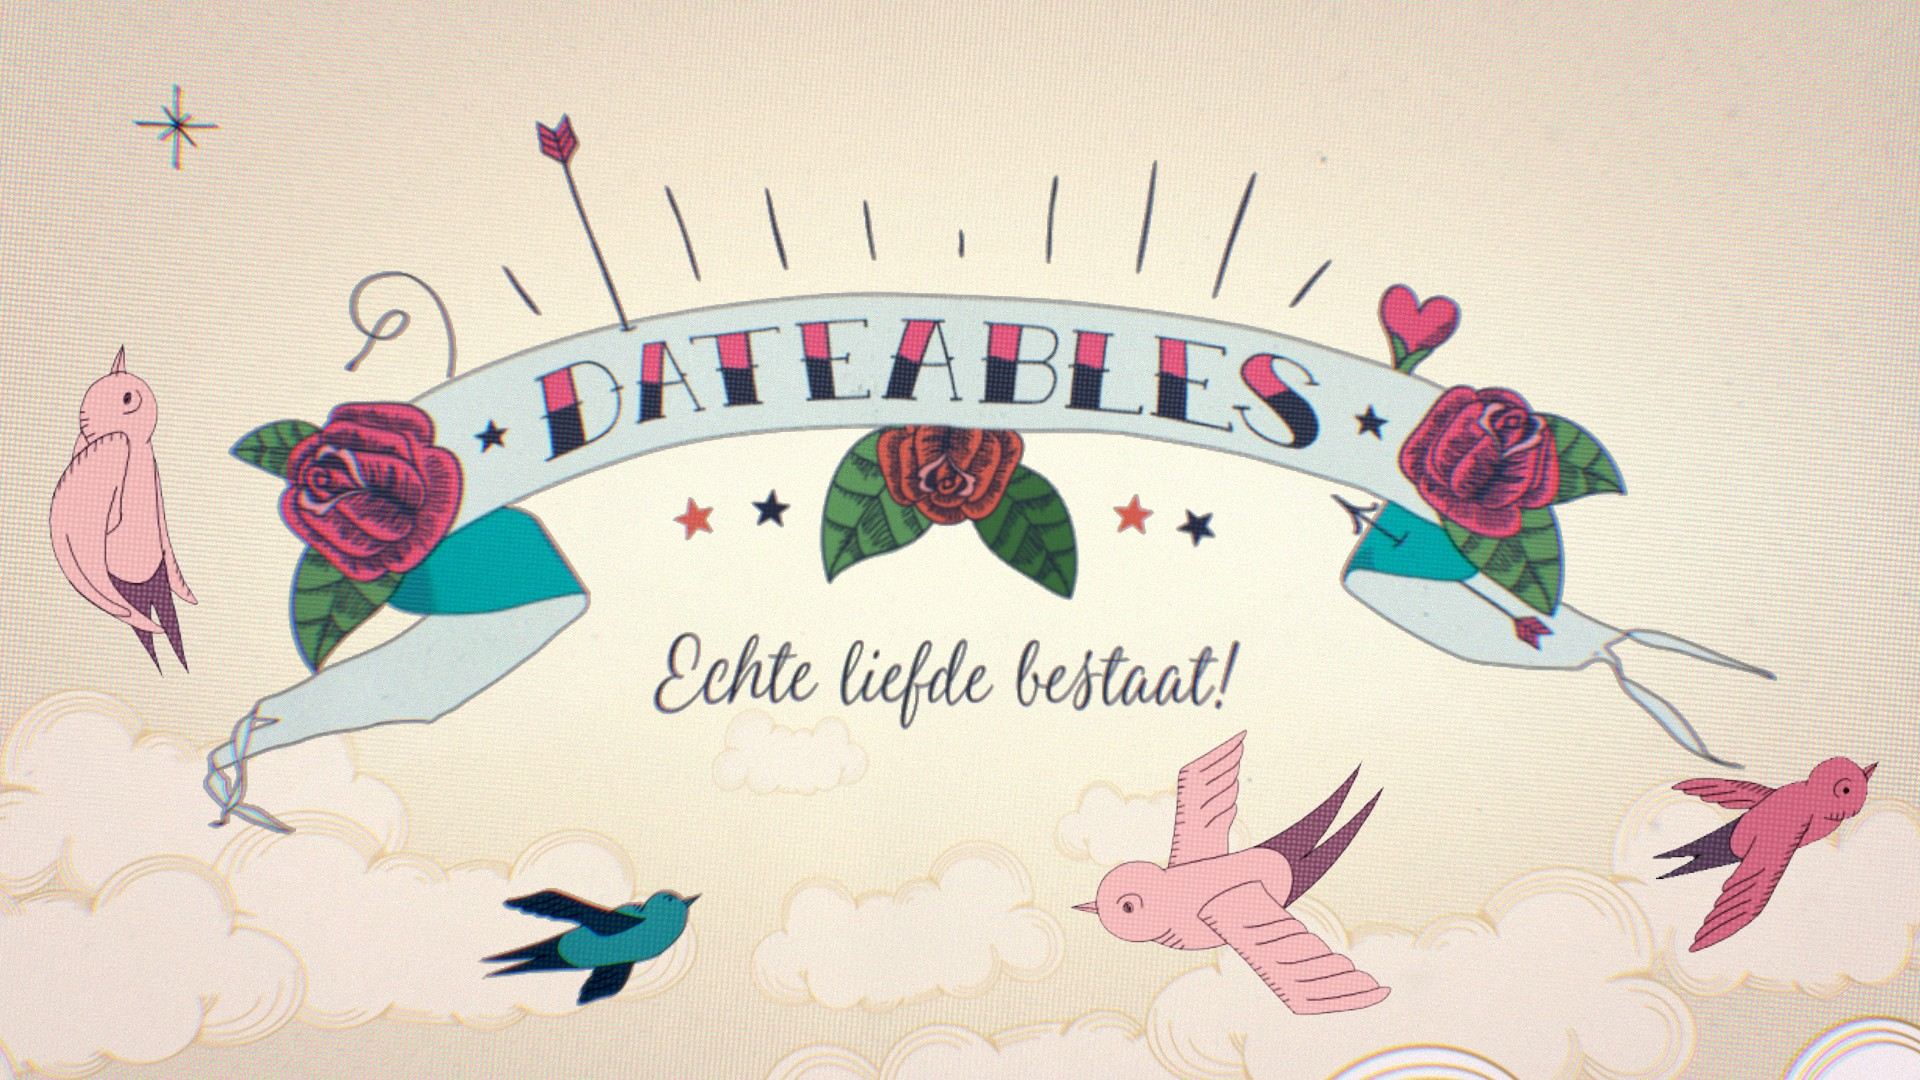 The Dateables (NL)